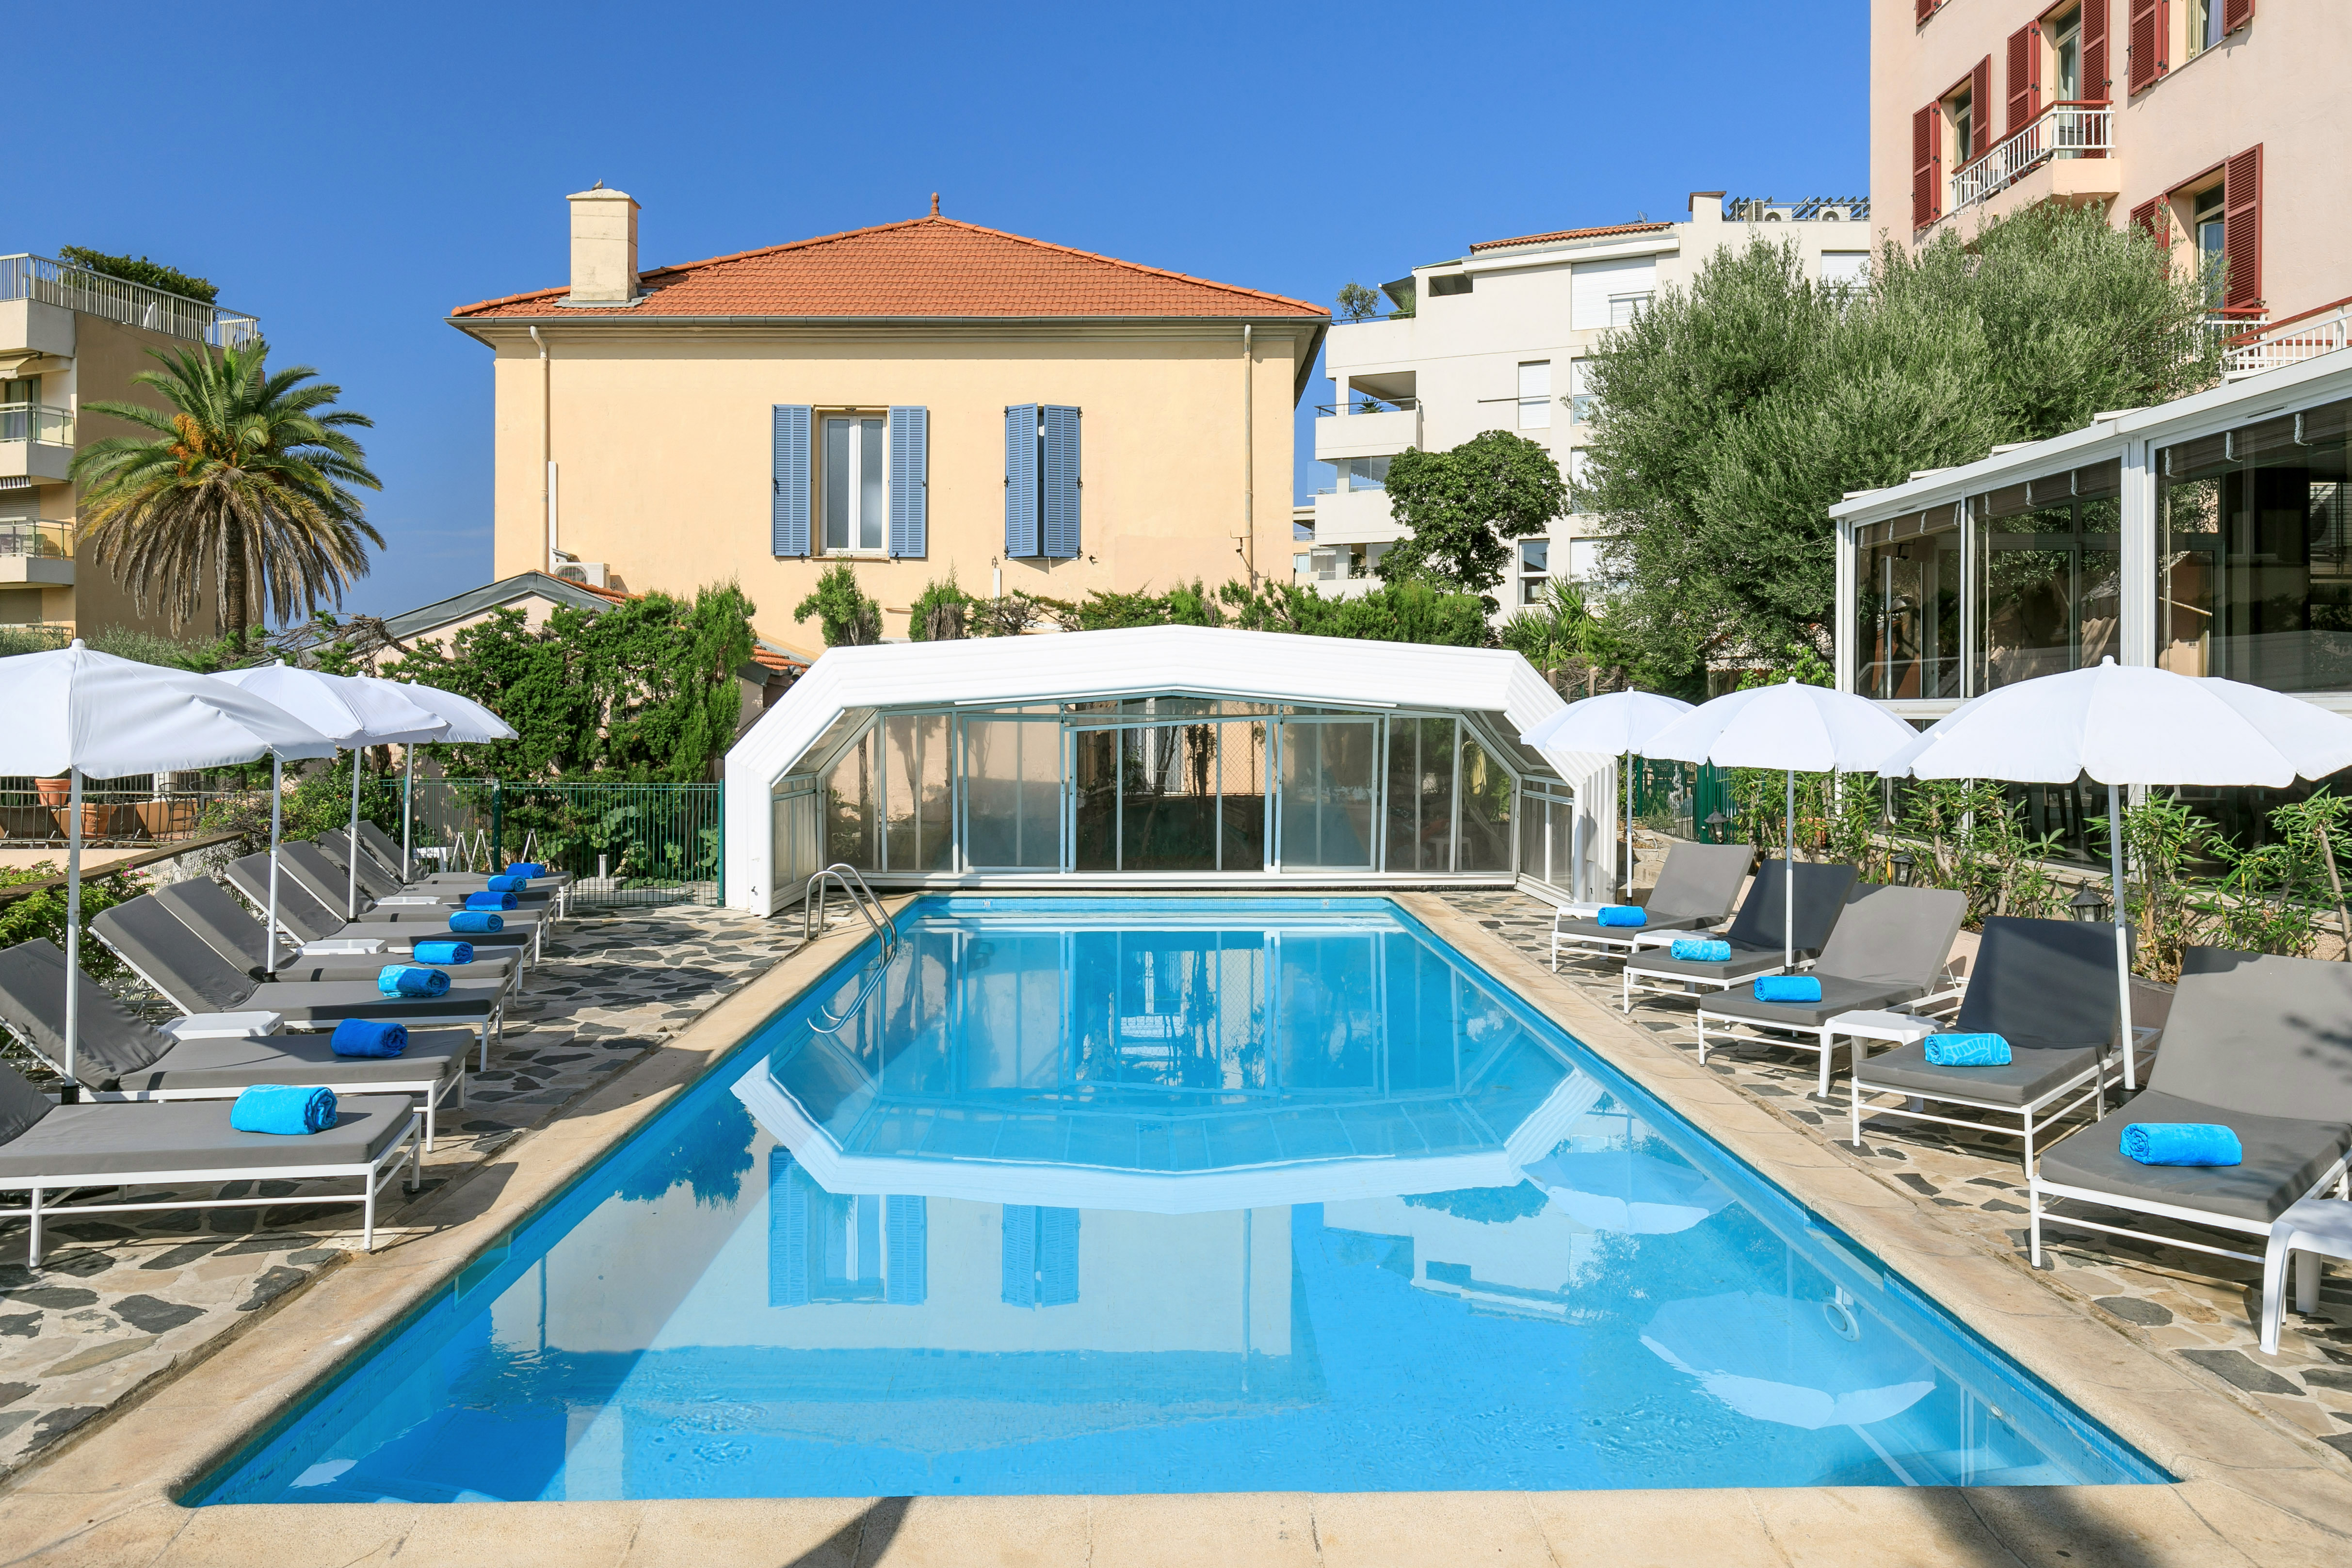 Your 3 star hotel in Cannes with outdoor swimming pool - Credit Summer Hotels